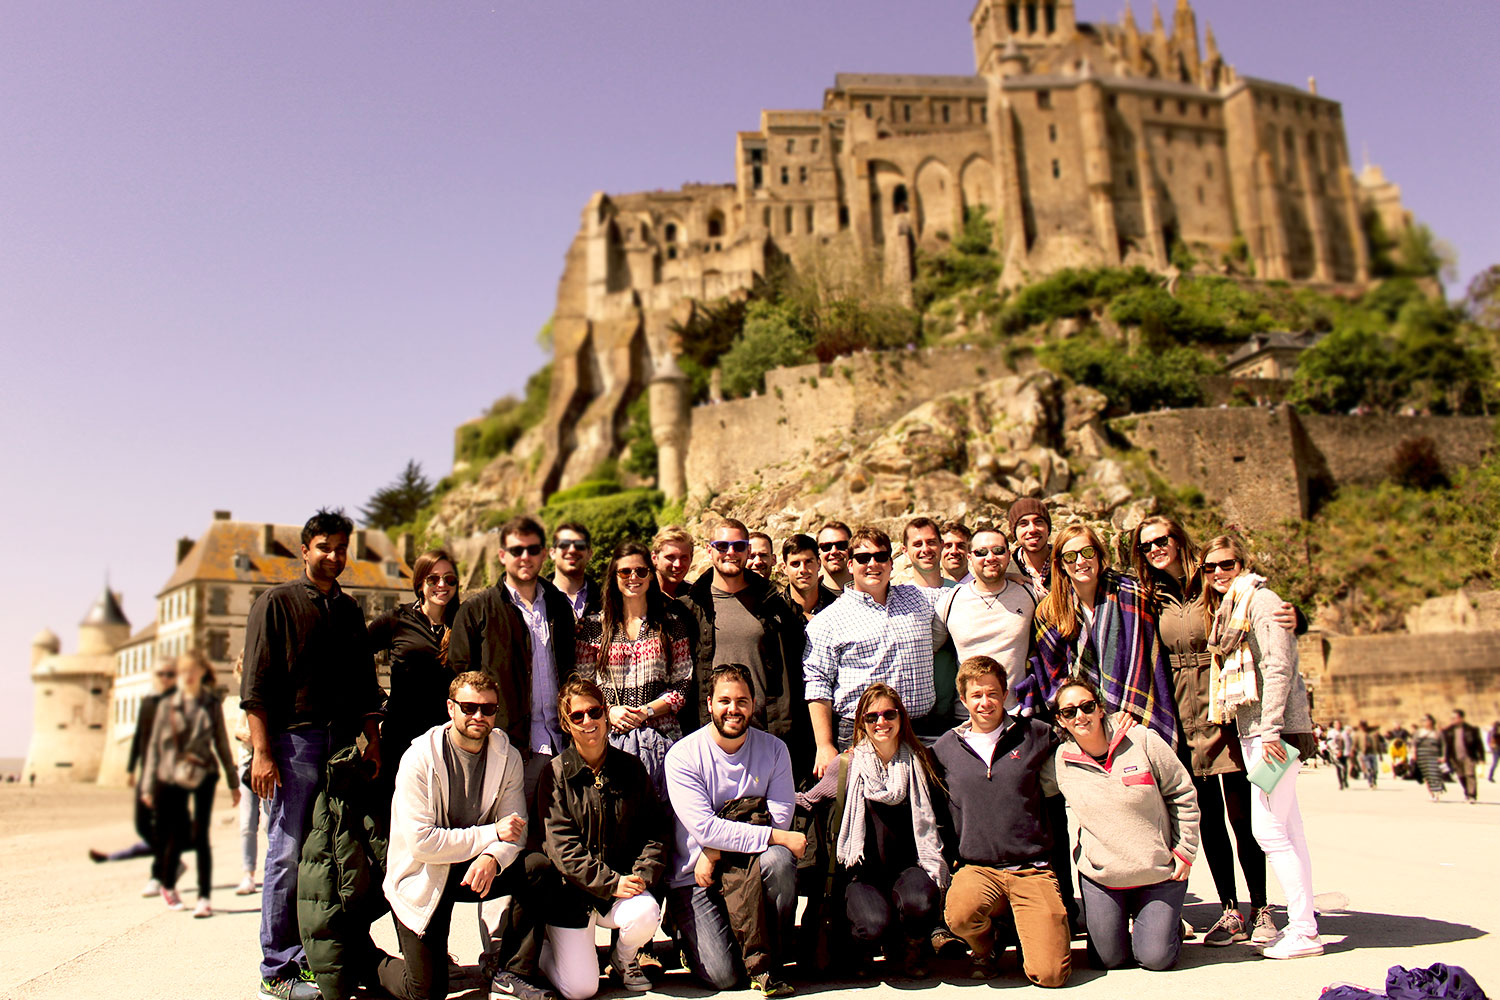 The group toured the Normandy beaches and Mont Saint-Michel, pictured here.